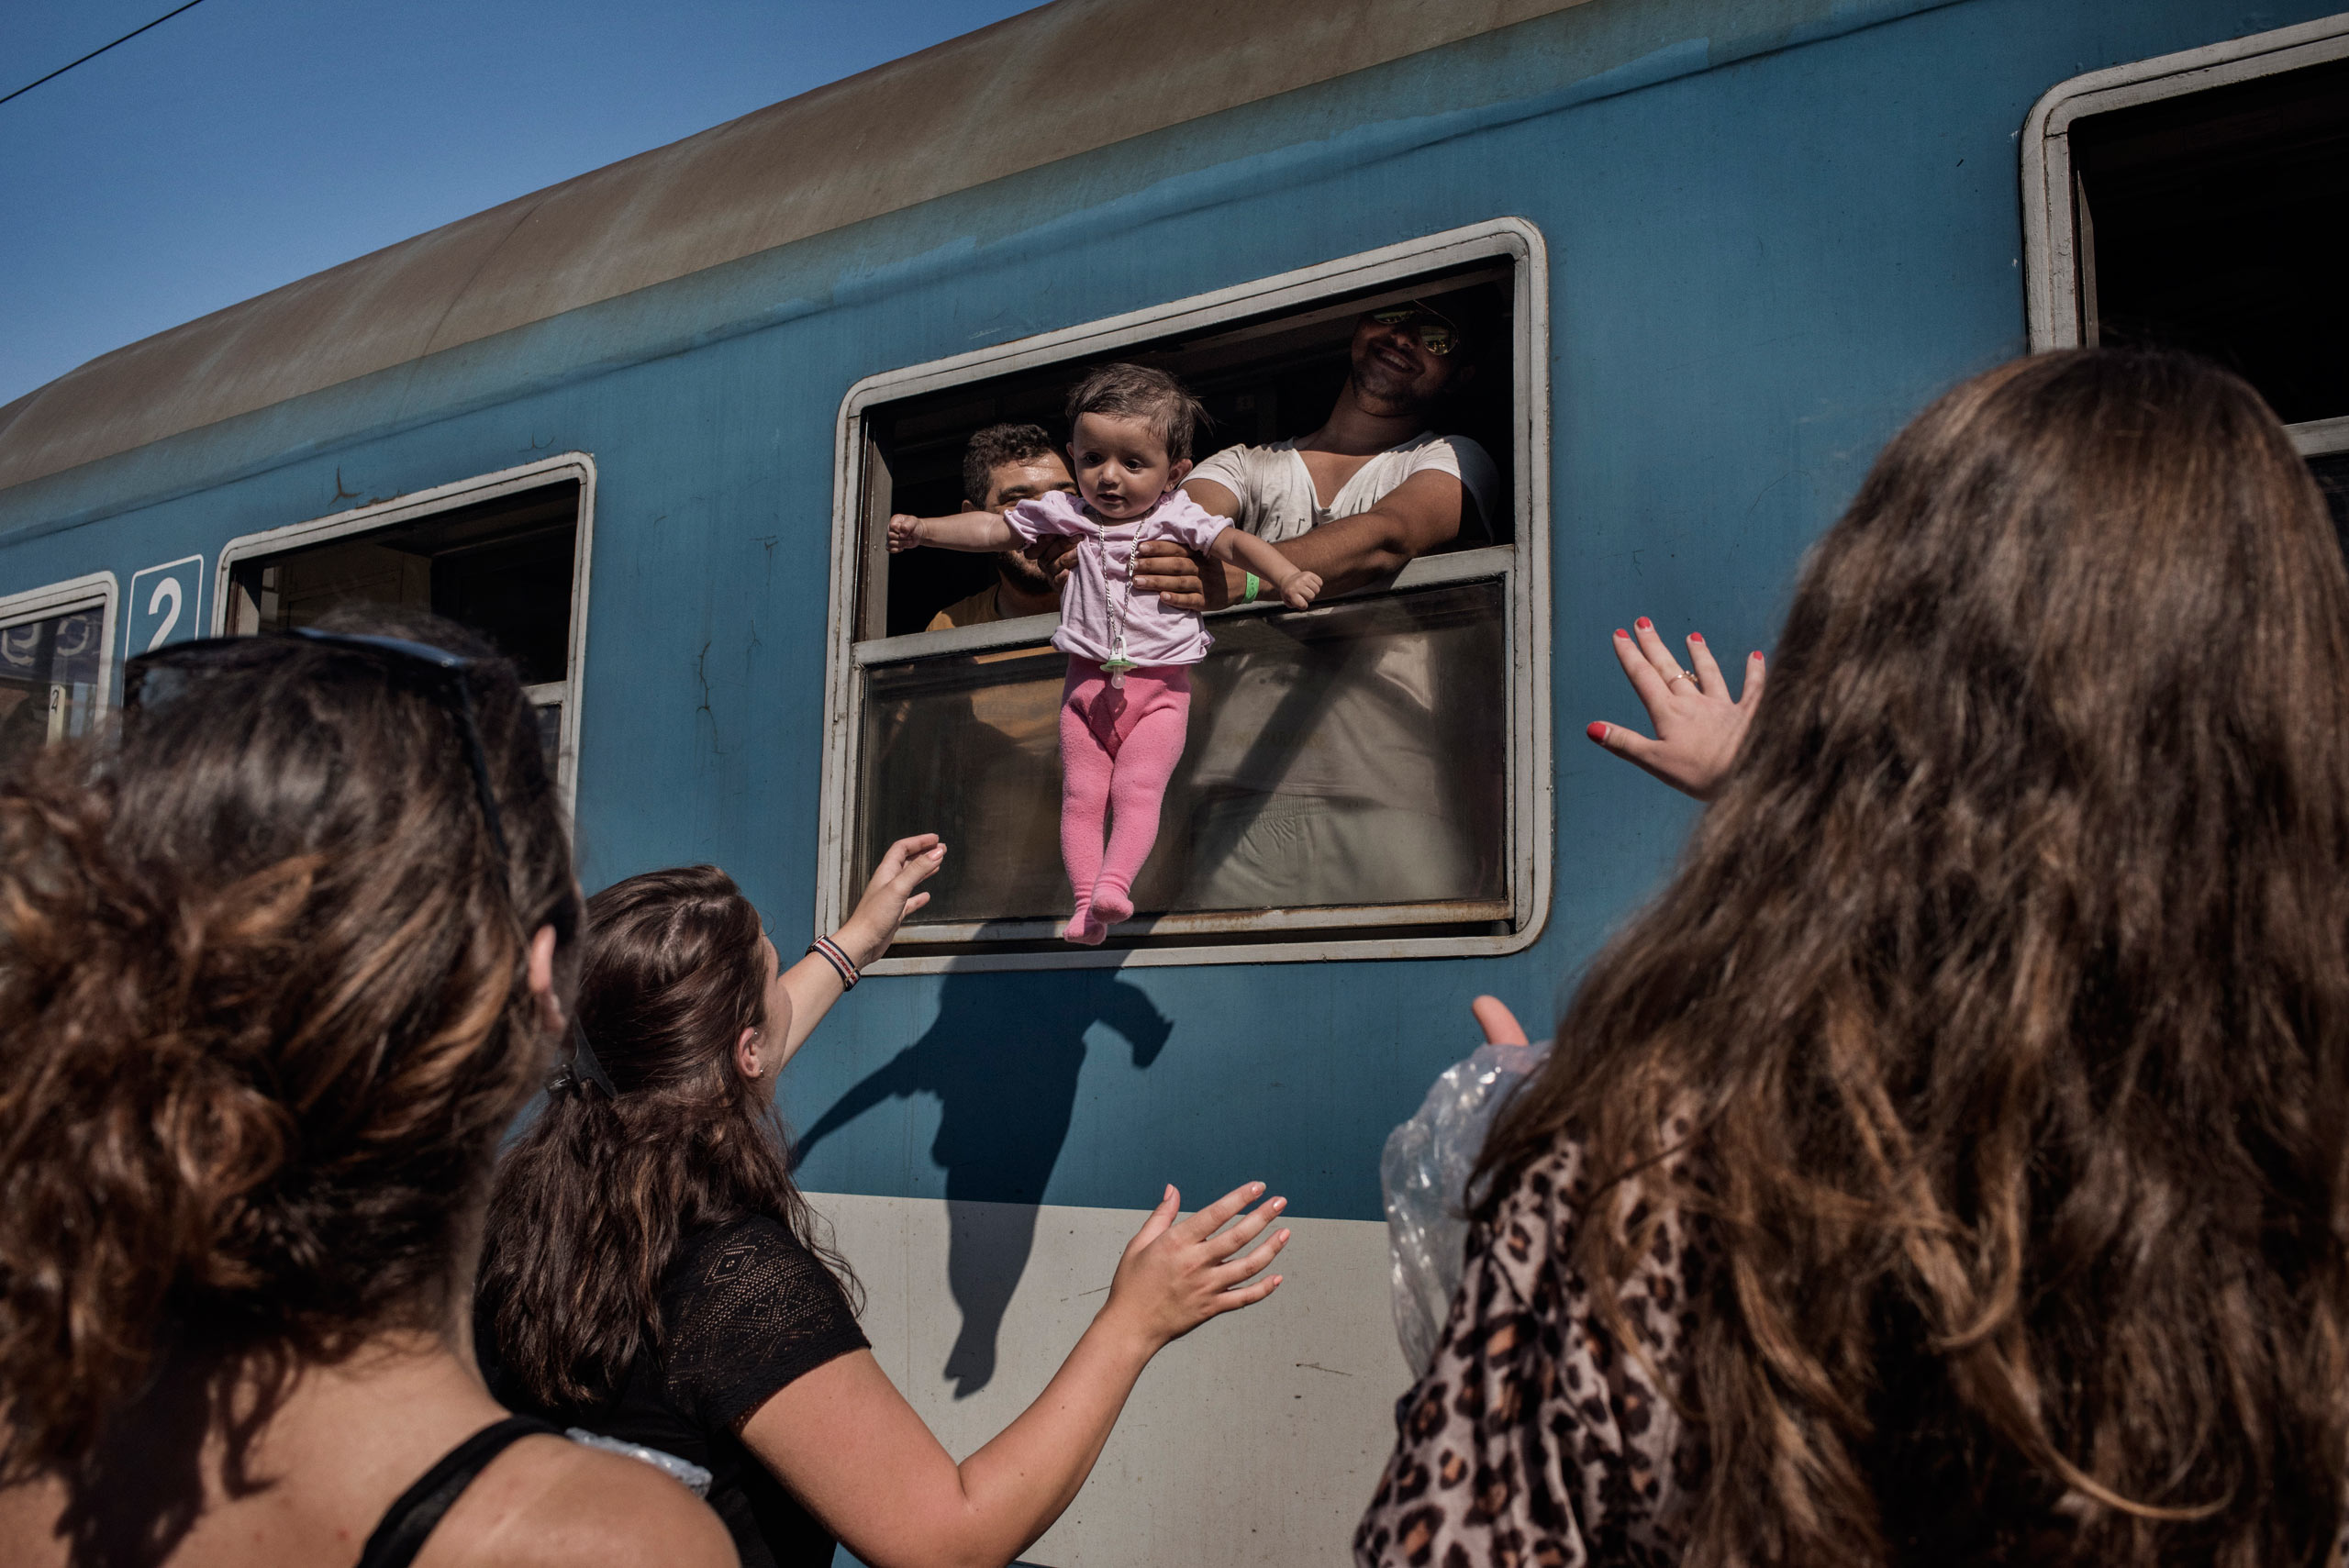 Volunteers wave goodbye to migrants  at the railway station in Szeged, Hungary.                               Hungarian authorities have used passenger trains to transport incoming migrants from the border region to registration centers in other parts of Hungary, Aug. 30, 2015.